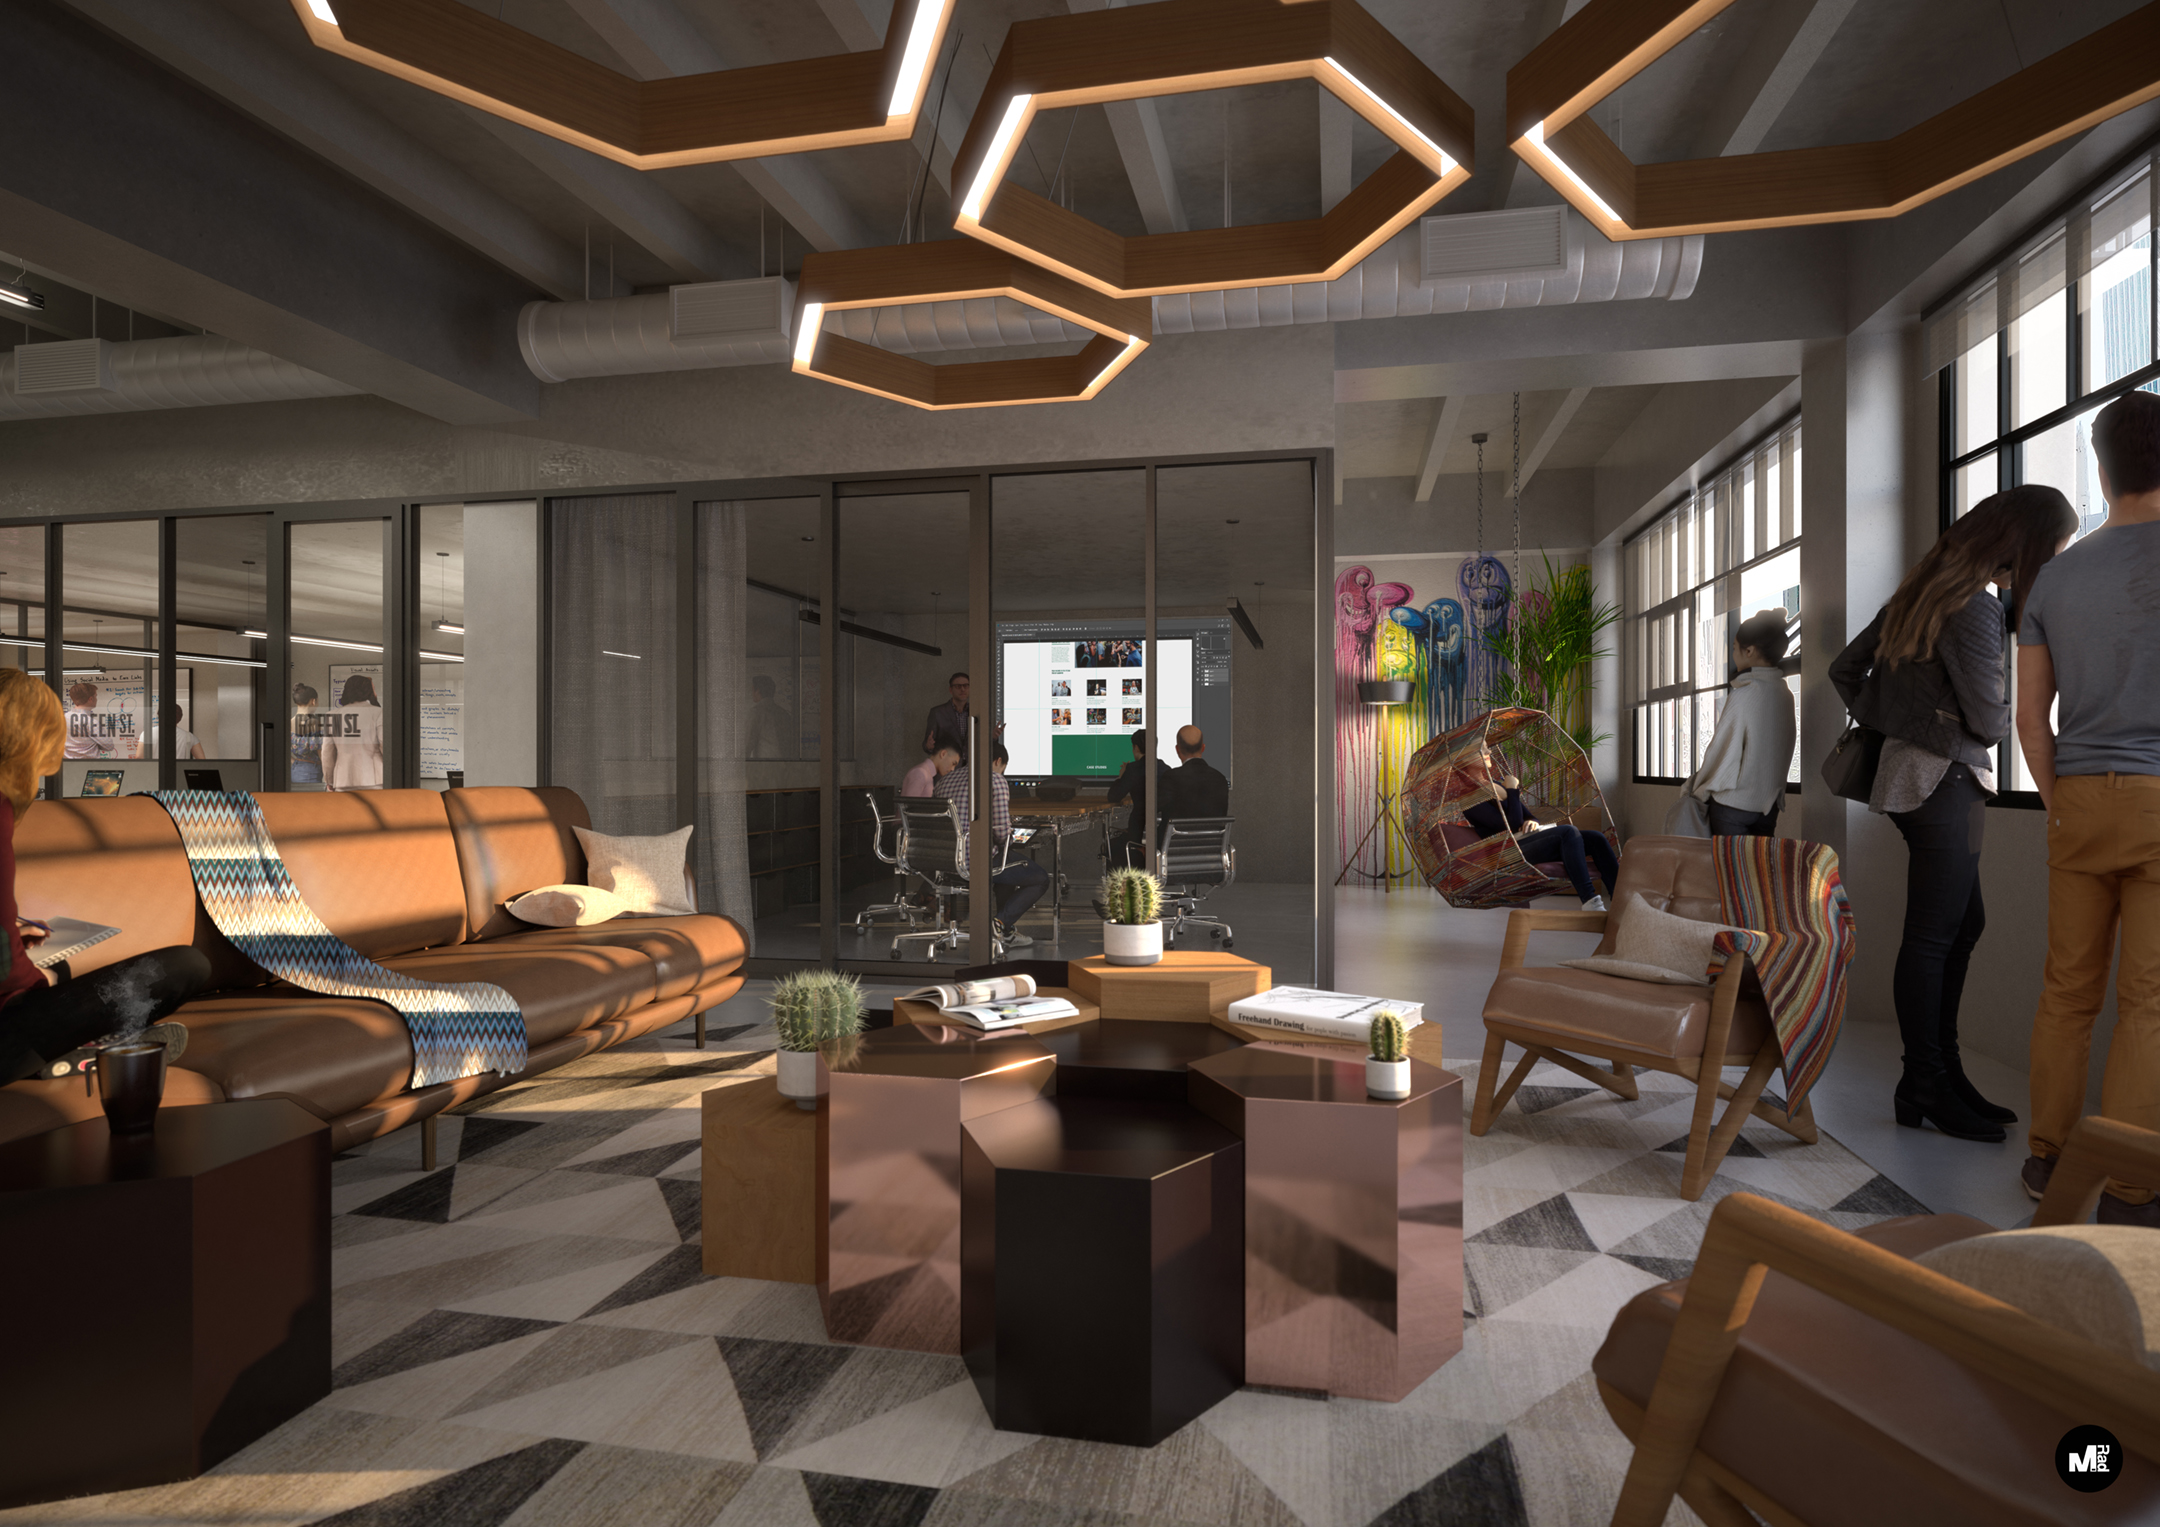 A rendering of the interior of the coworking space.